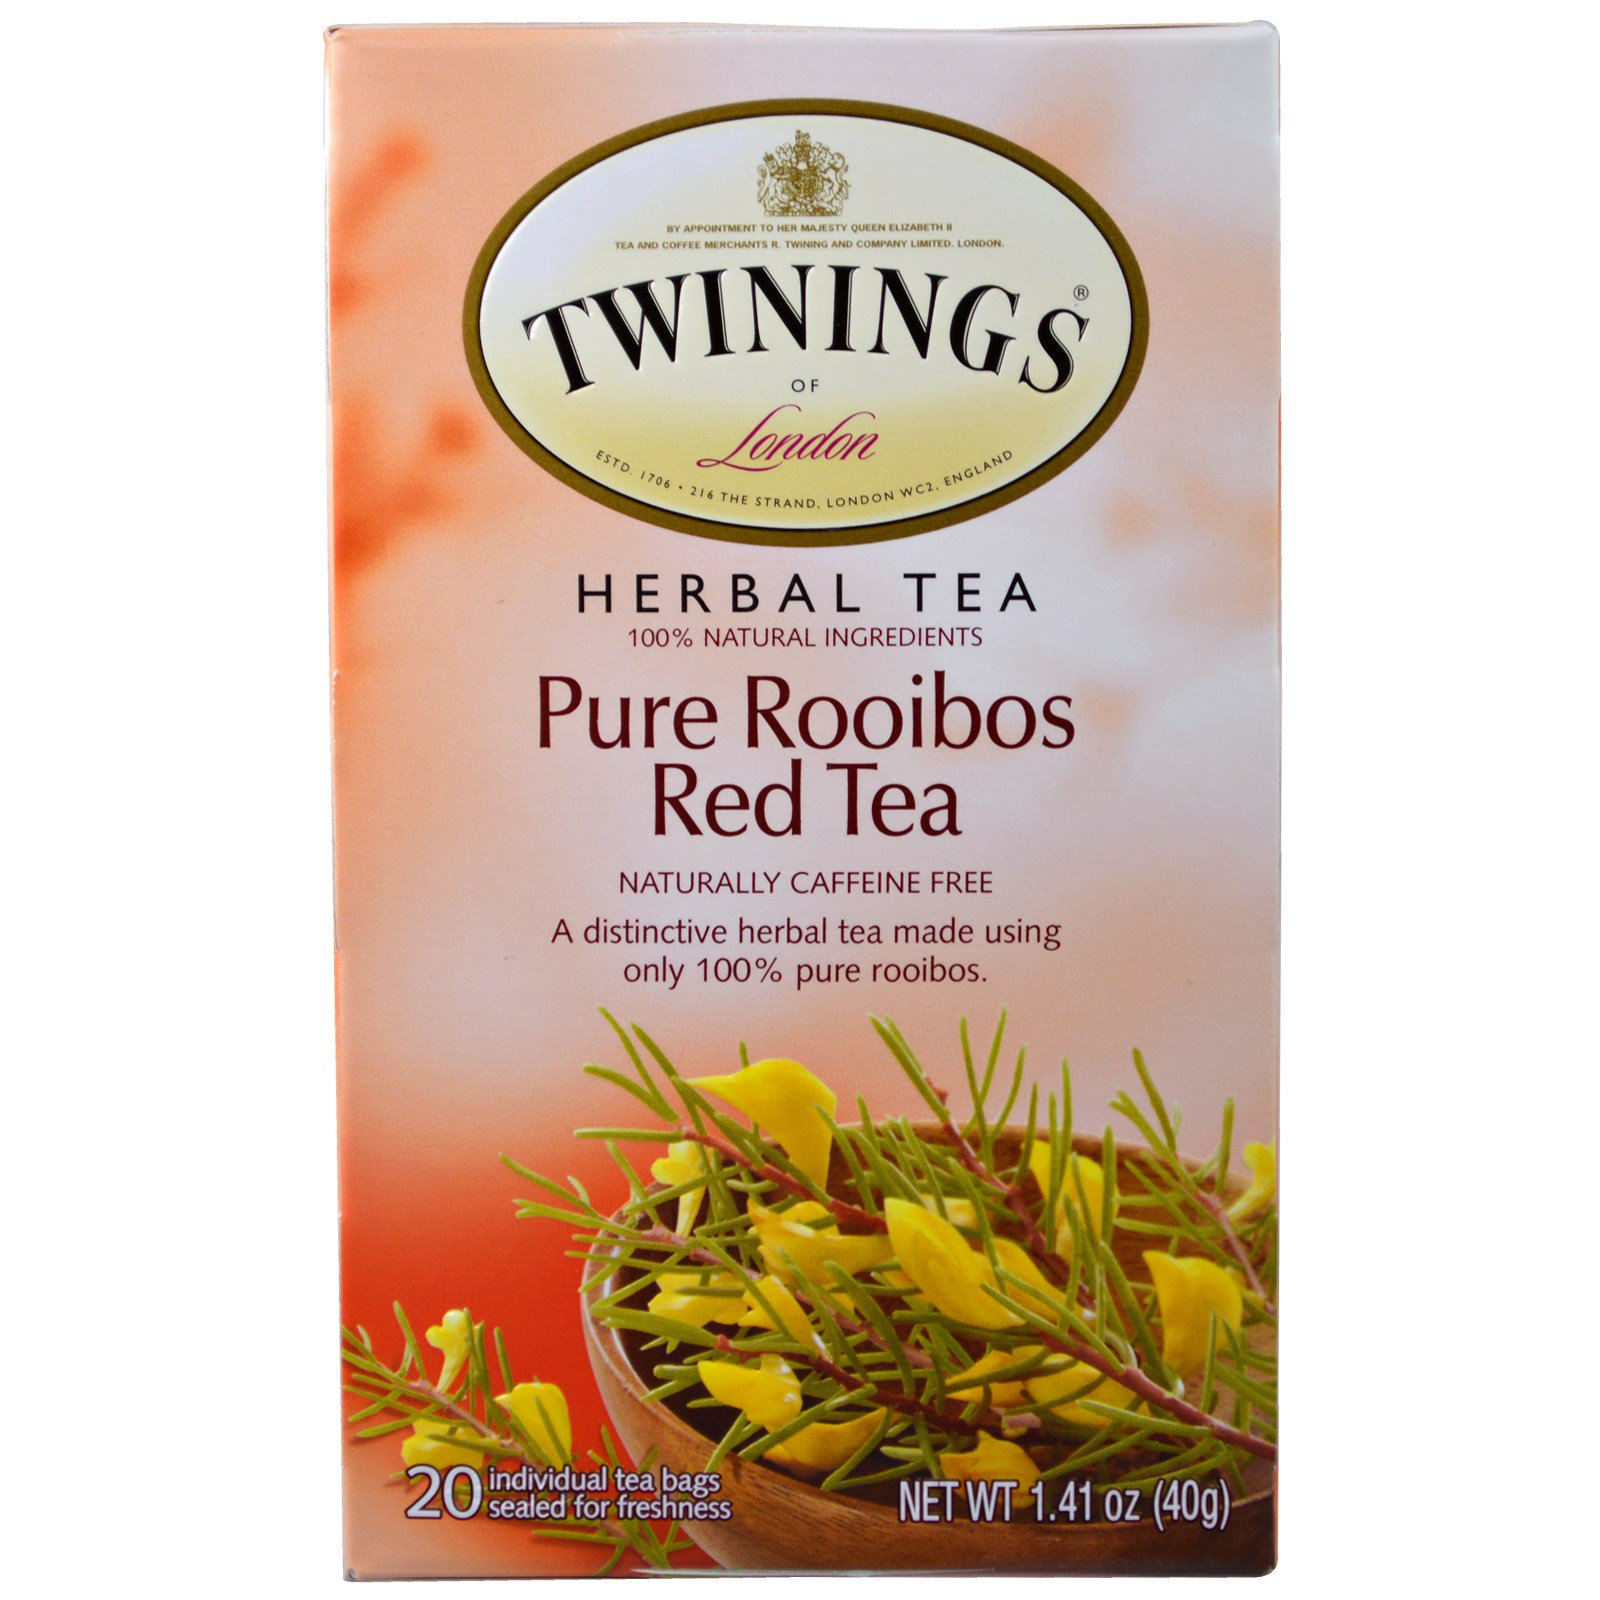 Is rooibos caffeinated